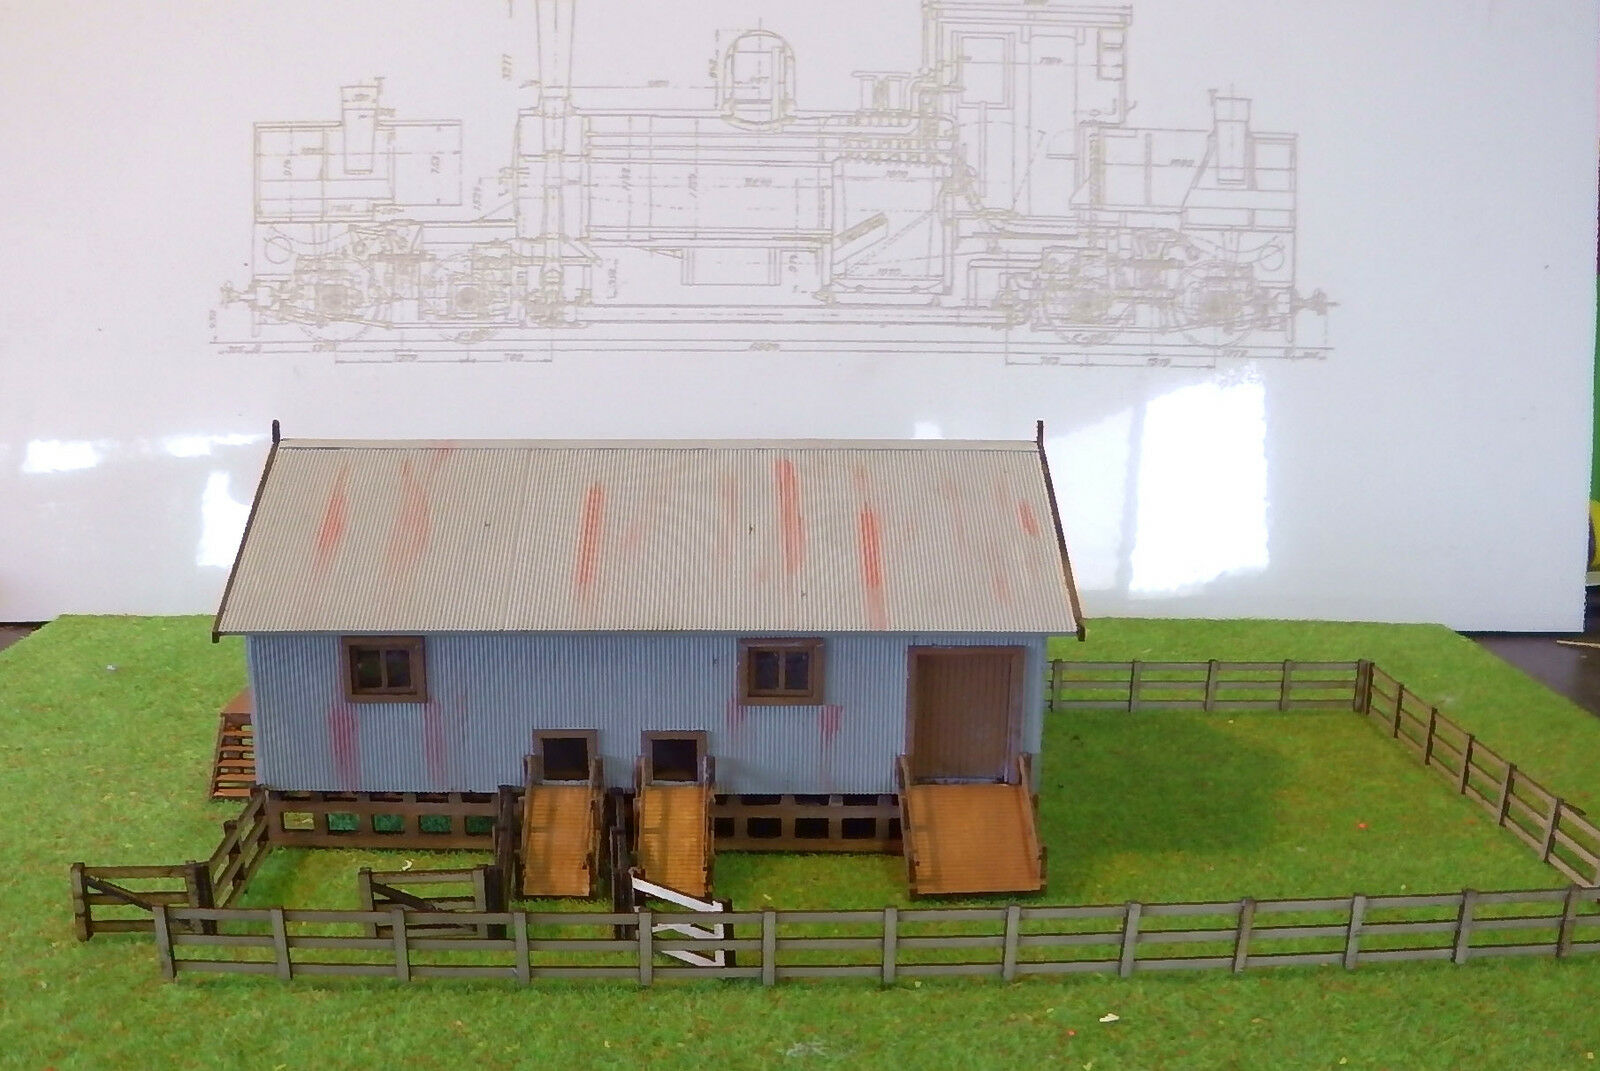 SHEARING SHED Wangaratta 117x60x55mm N 1/160 scale Laser cut Wood kit